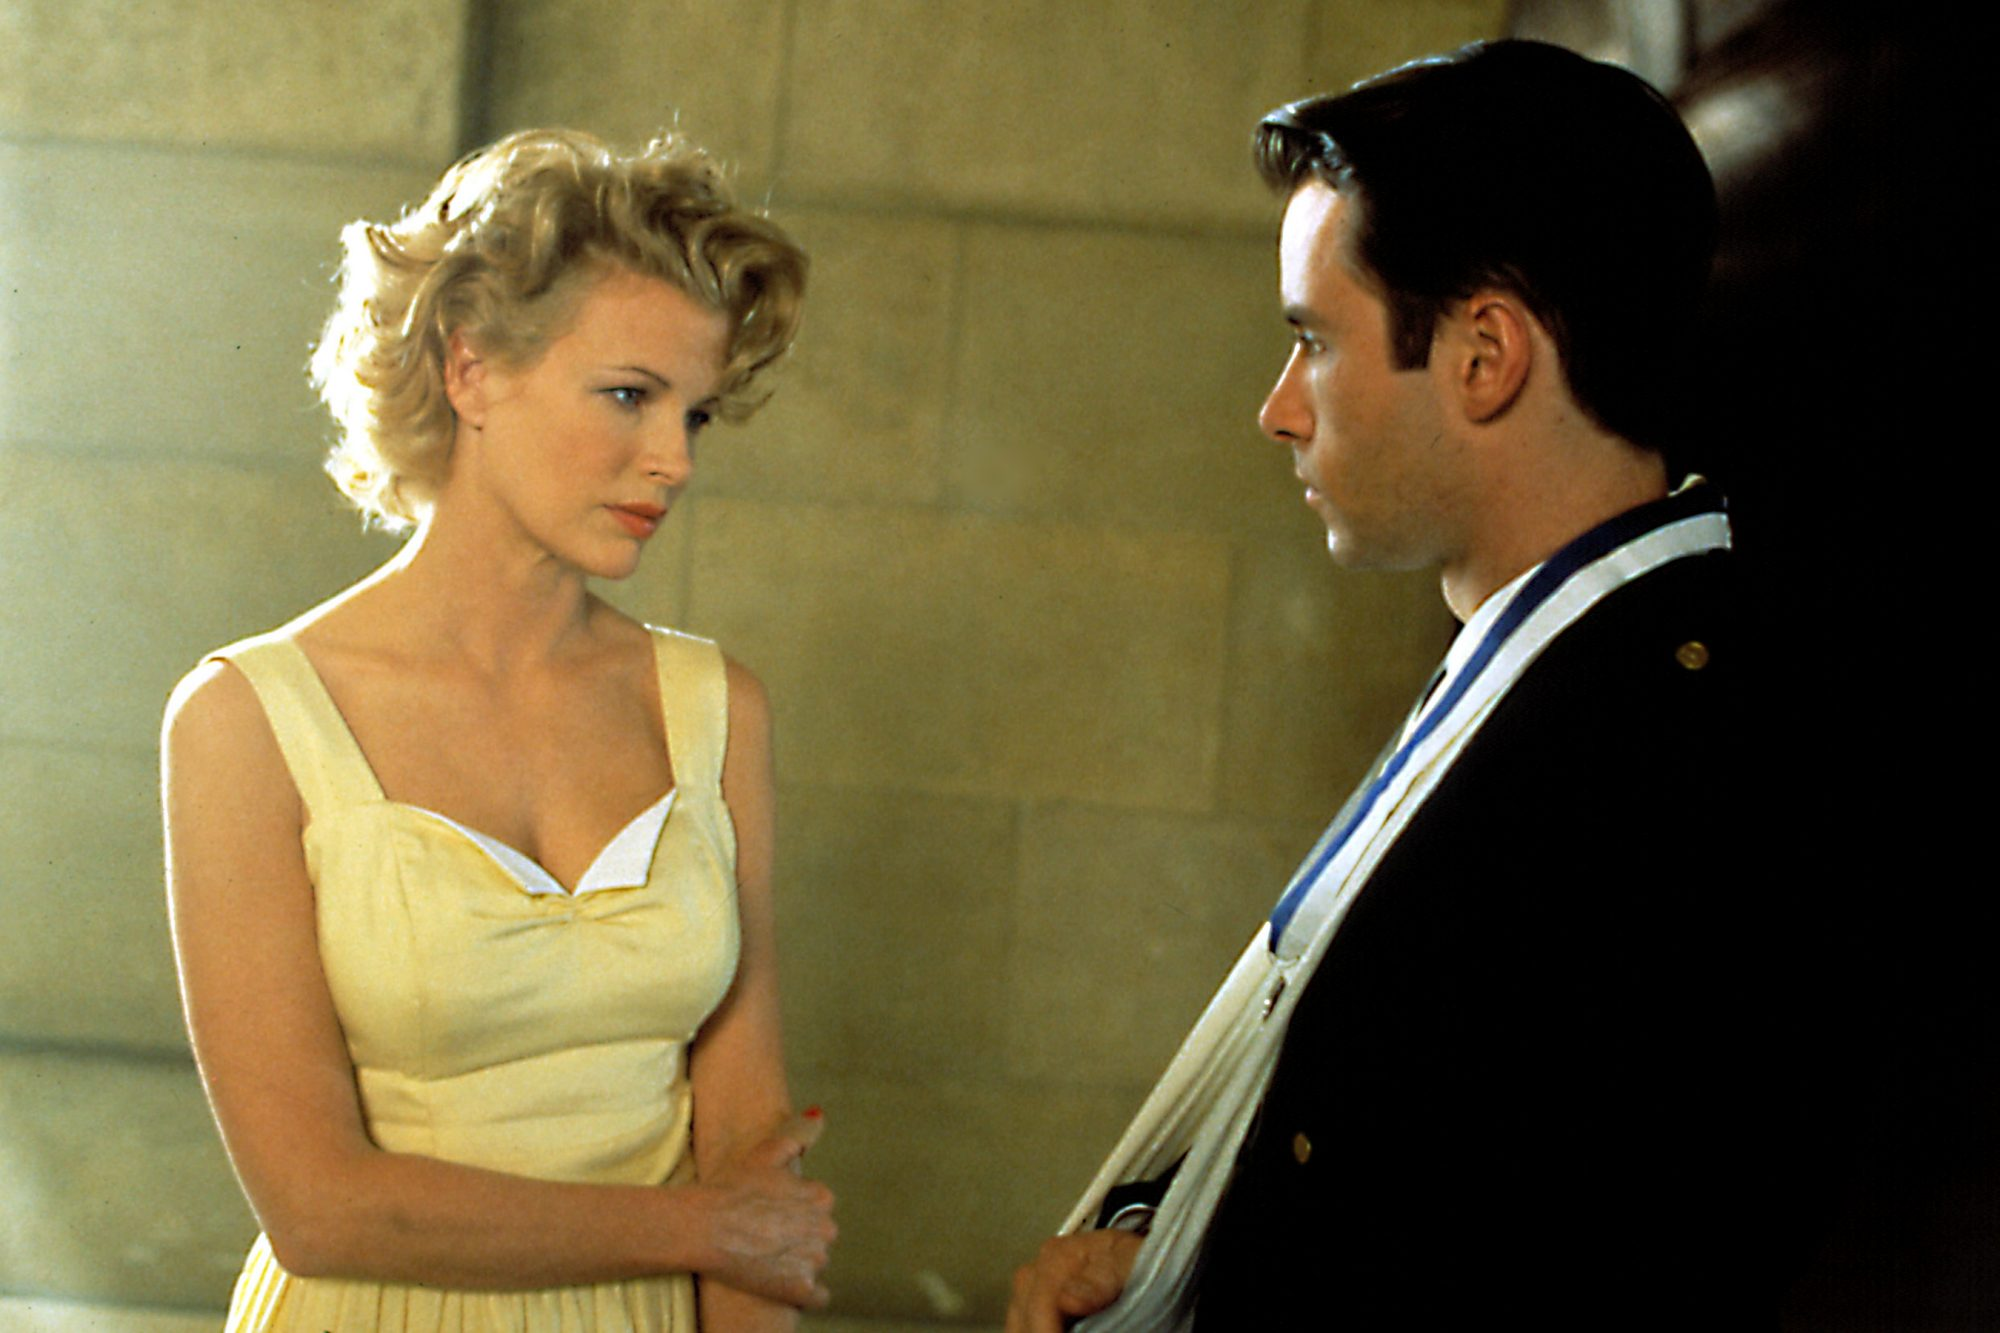 L.A. CONFIDENTIAL, Kim Basinger, Guy Pearce, 1997""